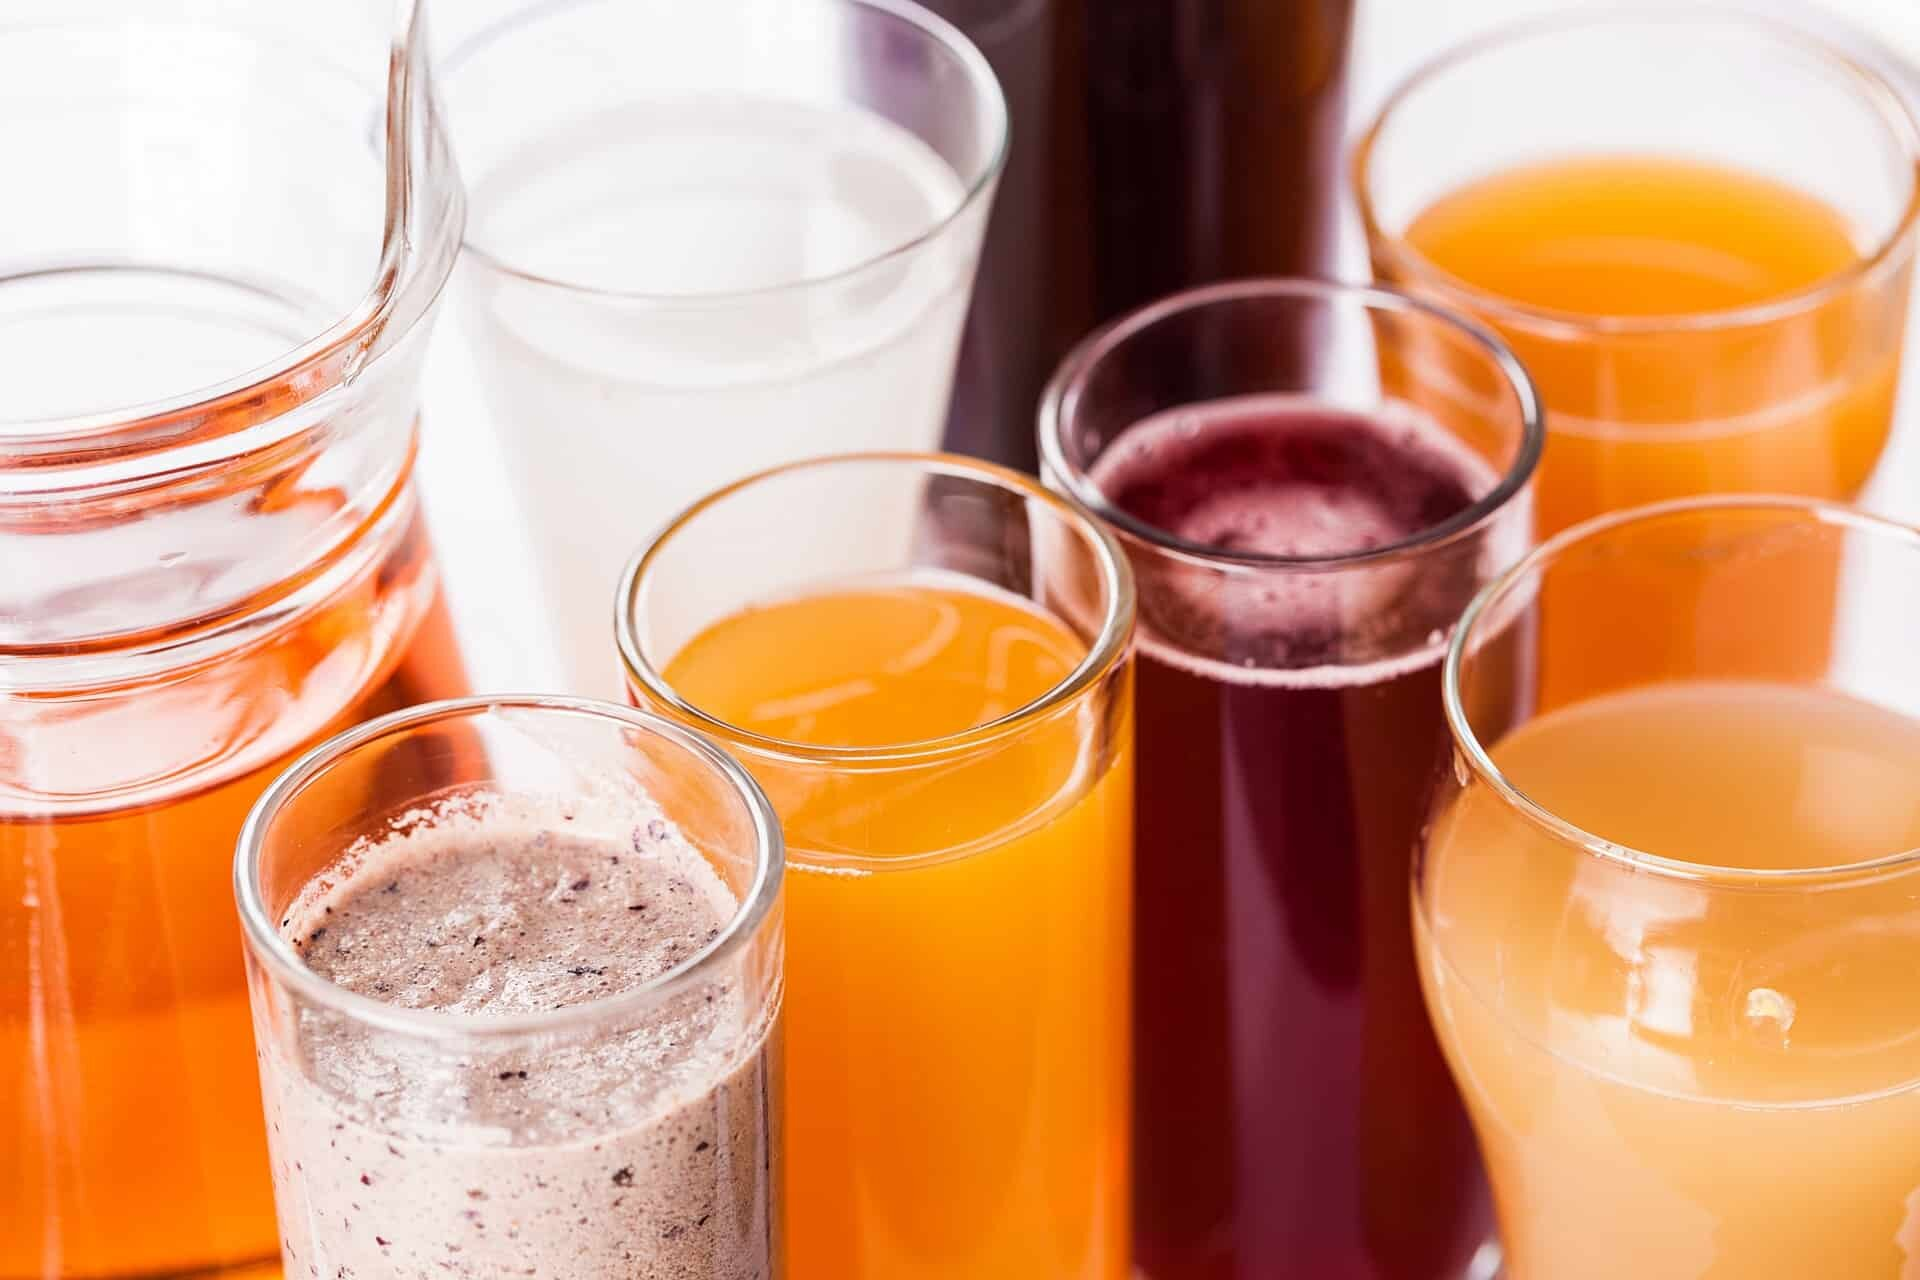 variety of home-made juice